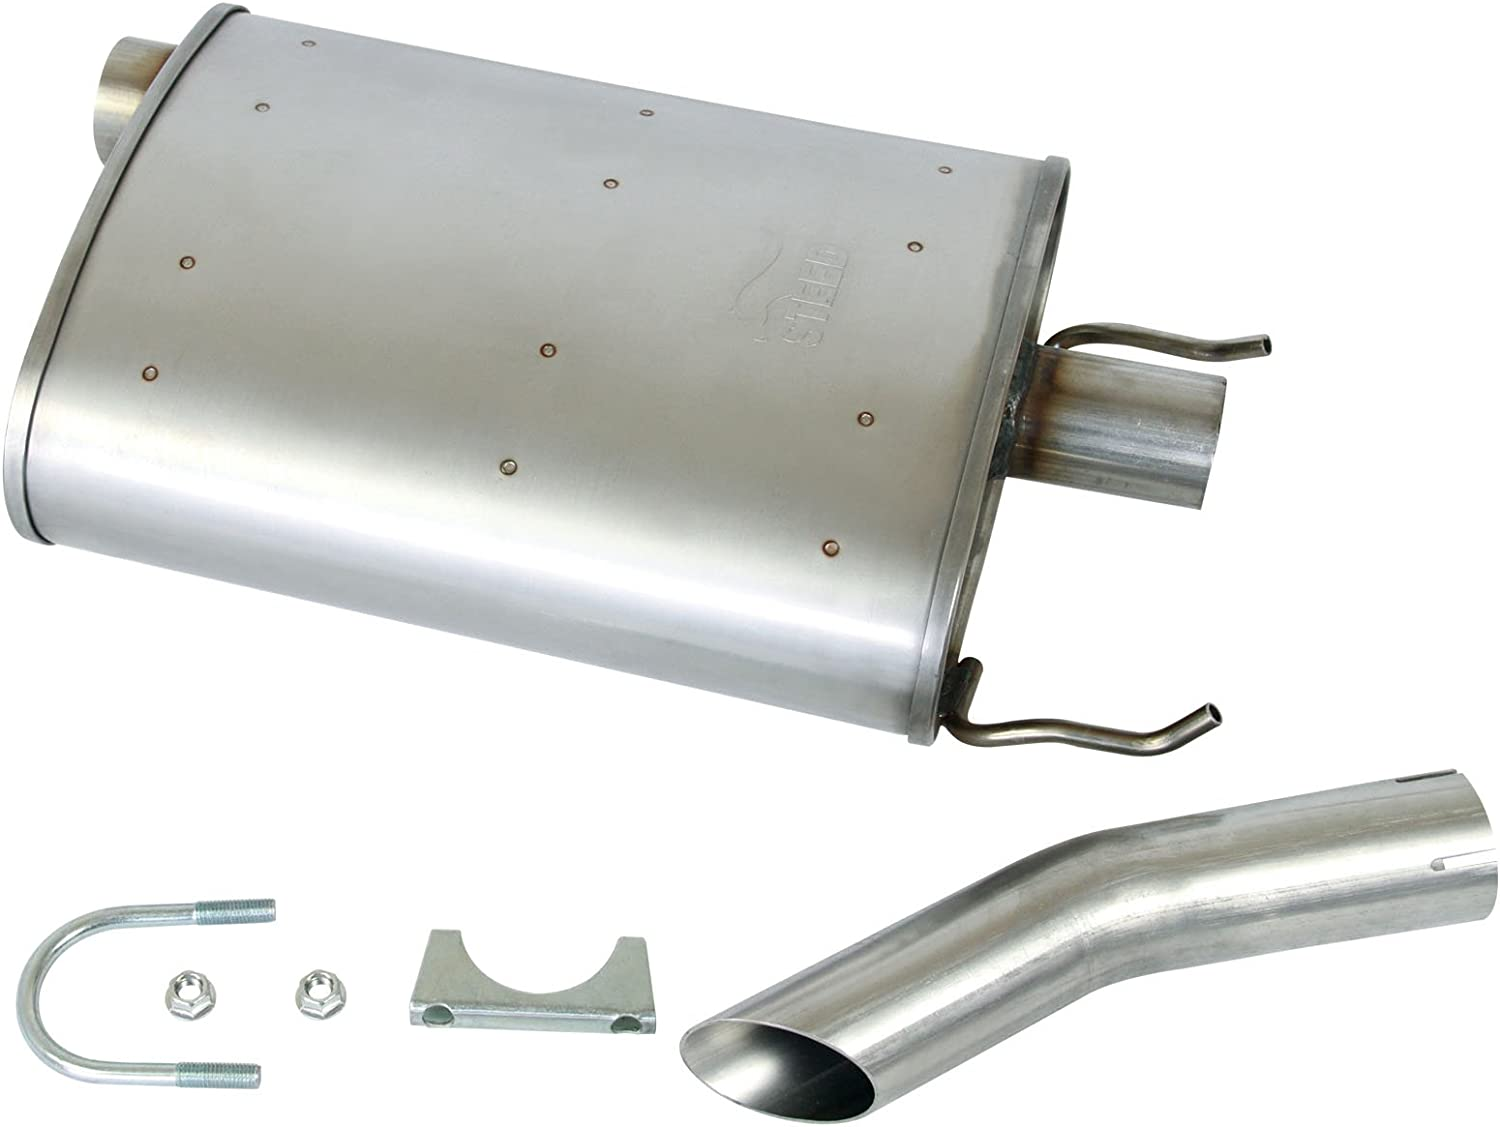 Stainless Steel SS Quiet-Flow Combination Muffler Exhaust,HAIHUA for 00-05 Chevy Impala /& 00-05 Chevy Monte Carlo